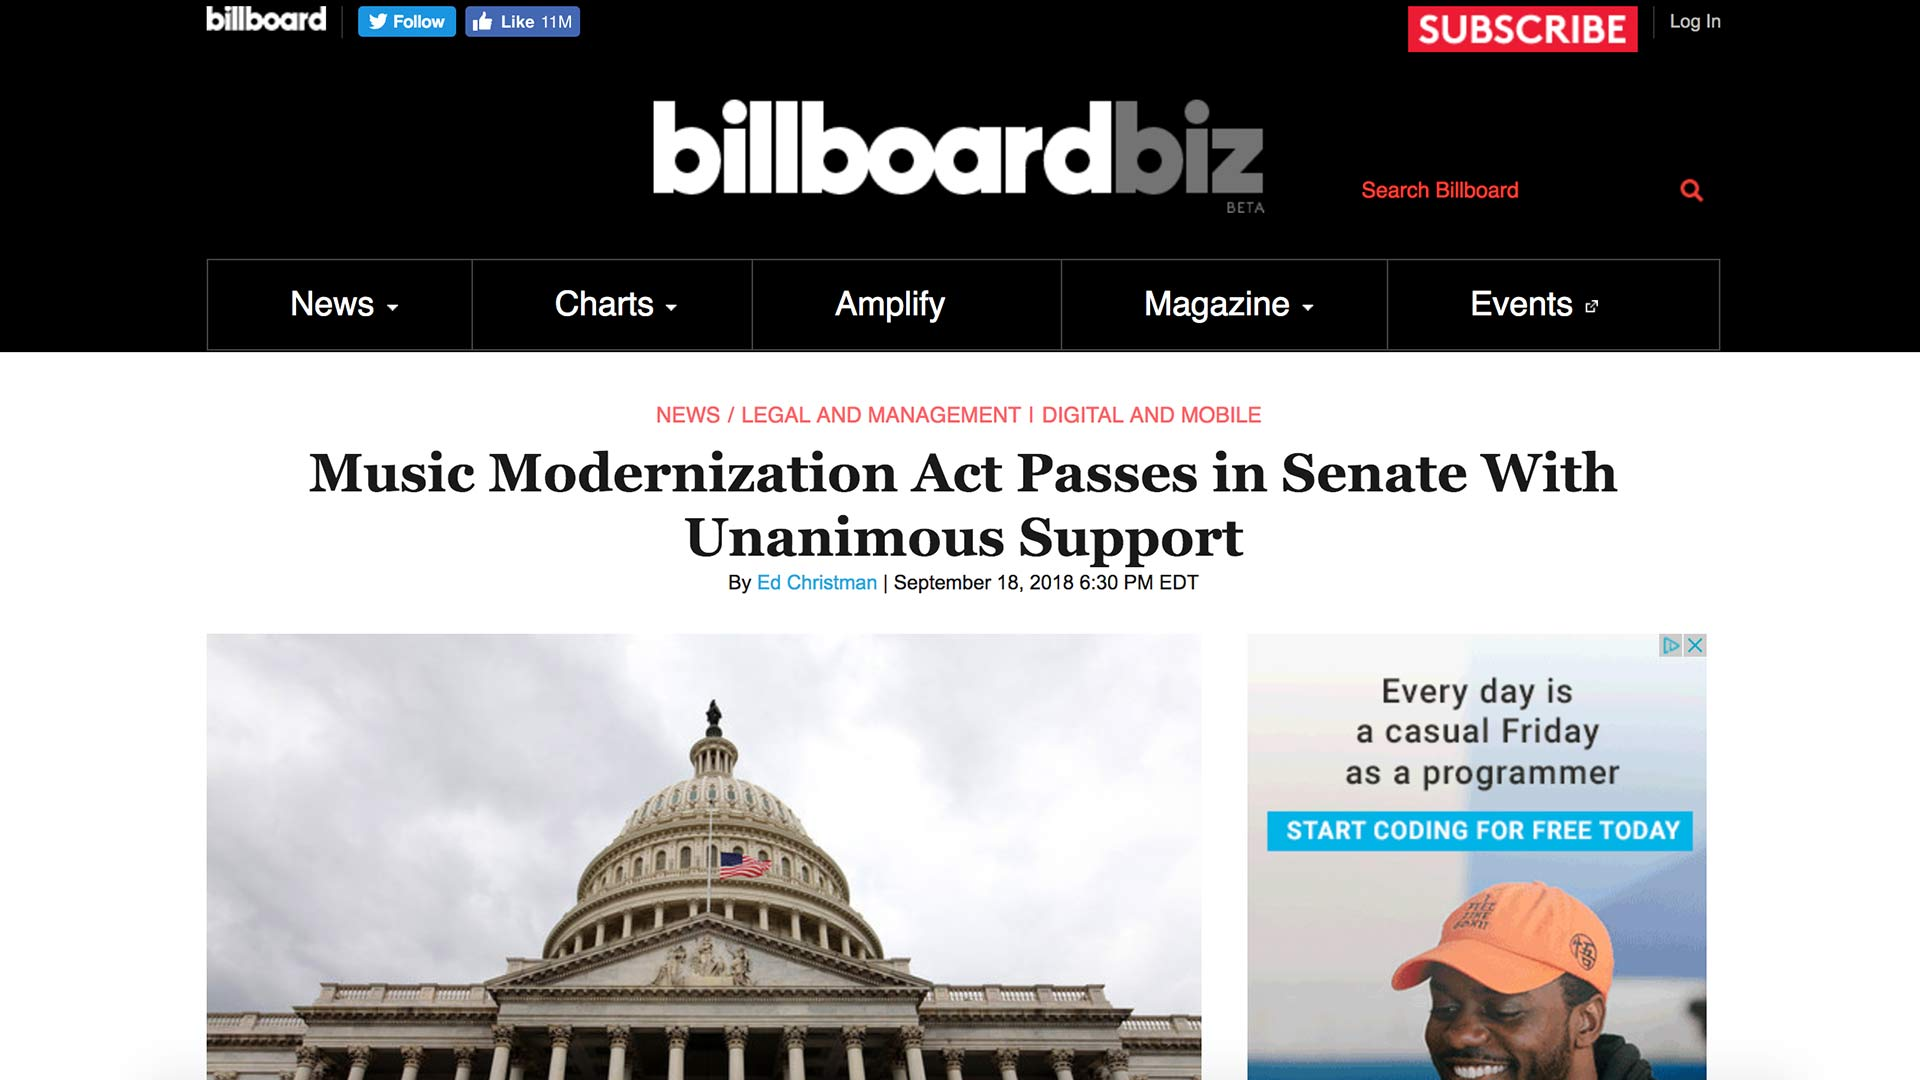 Fairness Rocks News Music Modernization Act Passes in Senate With Unanimous Support